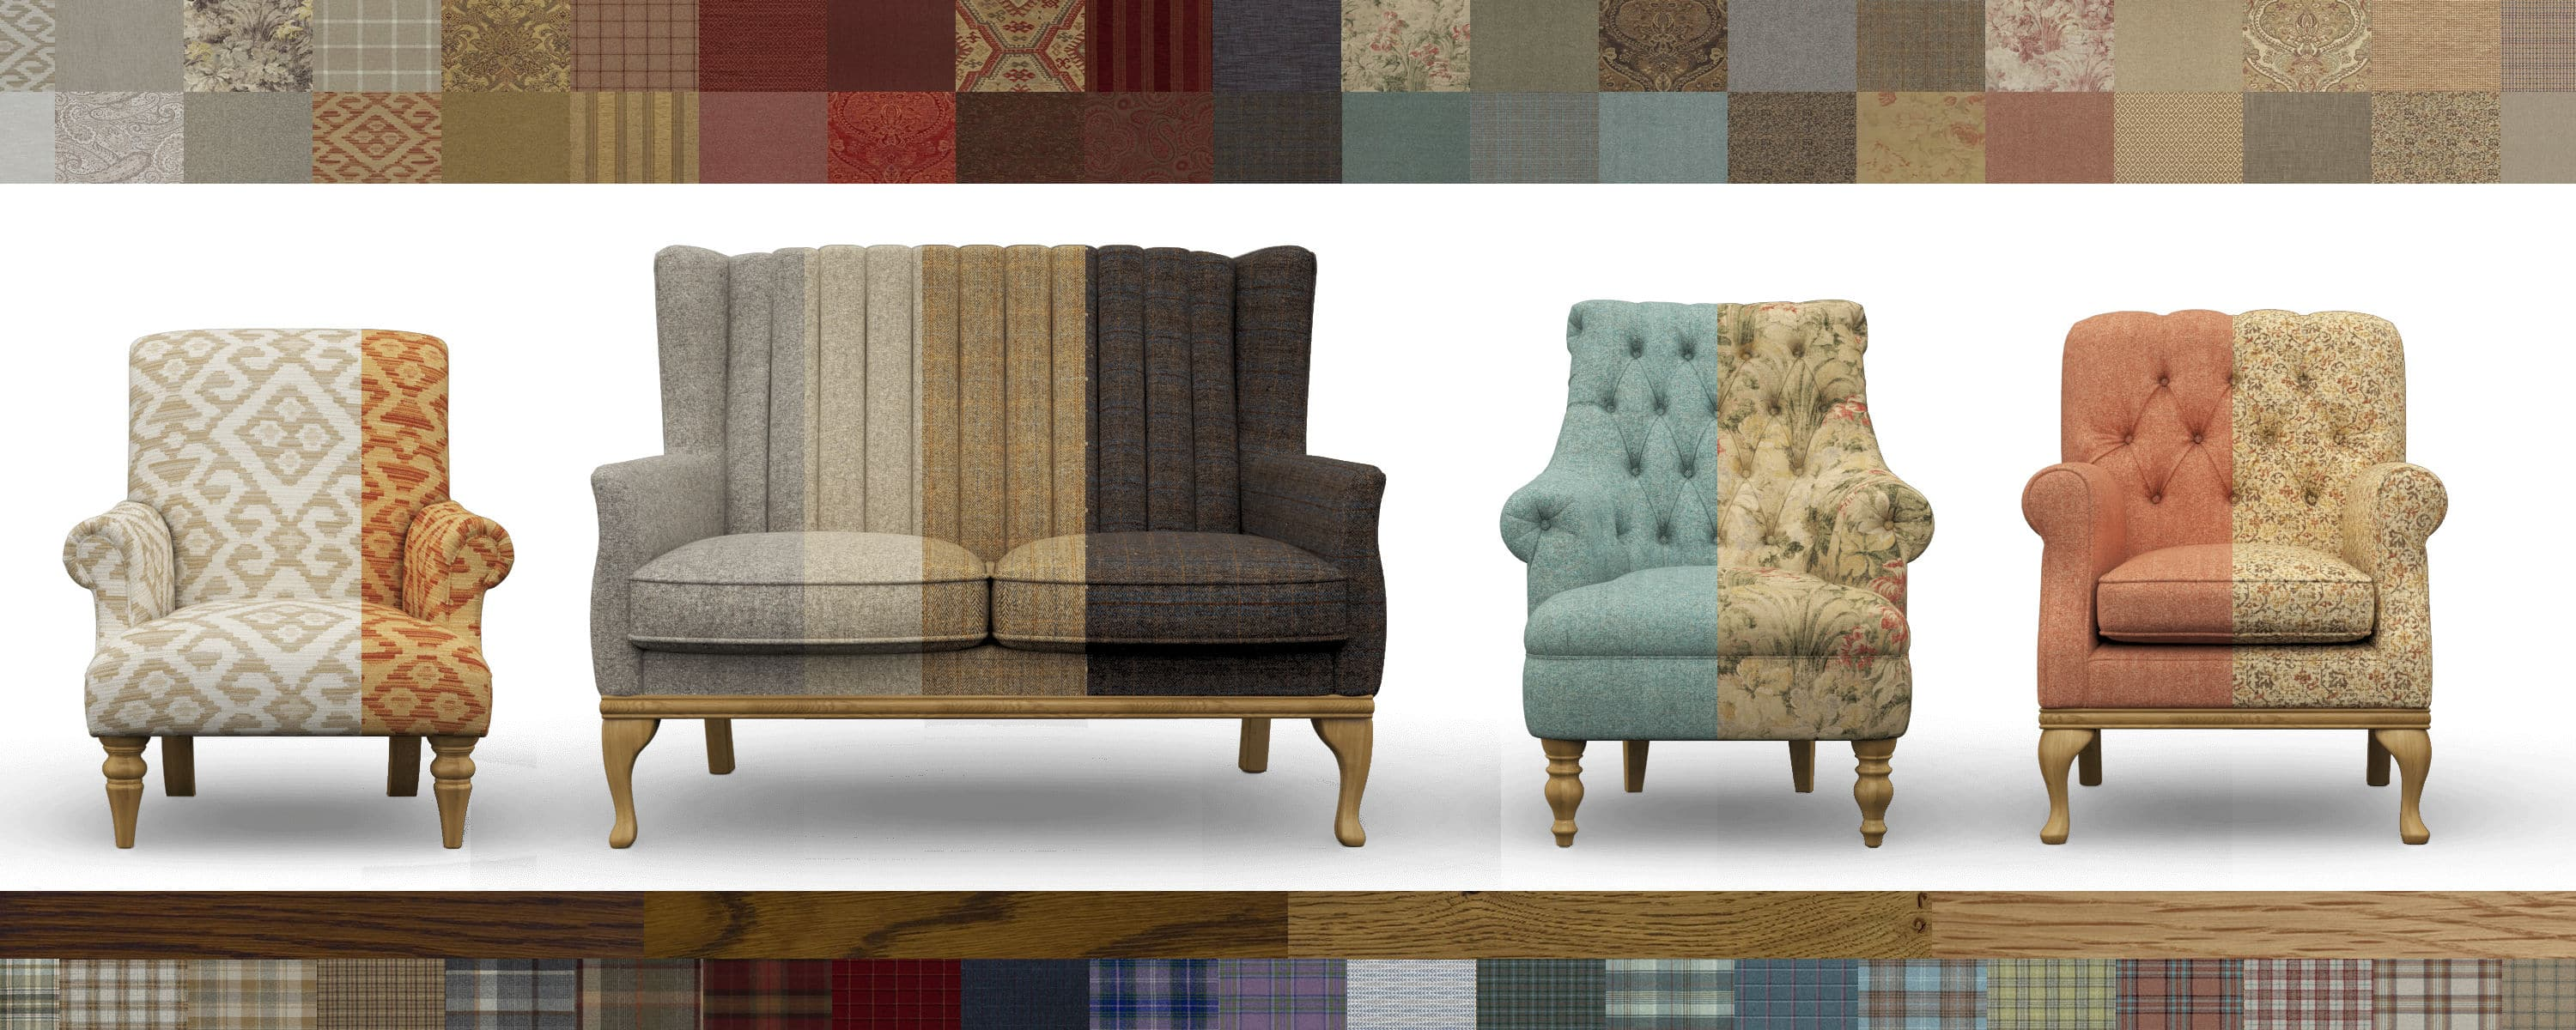 configurate your own armchair, design your own chair, customise your sofa, product configurator, product customisation,moon upholstery fabric